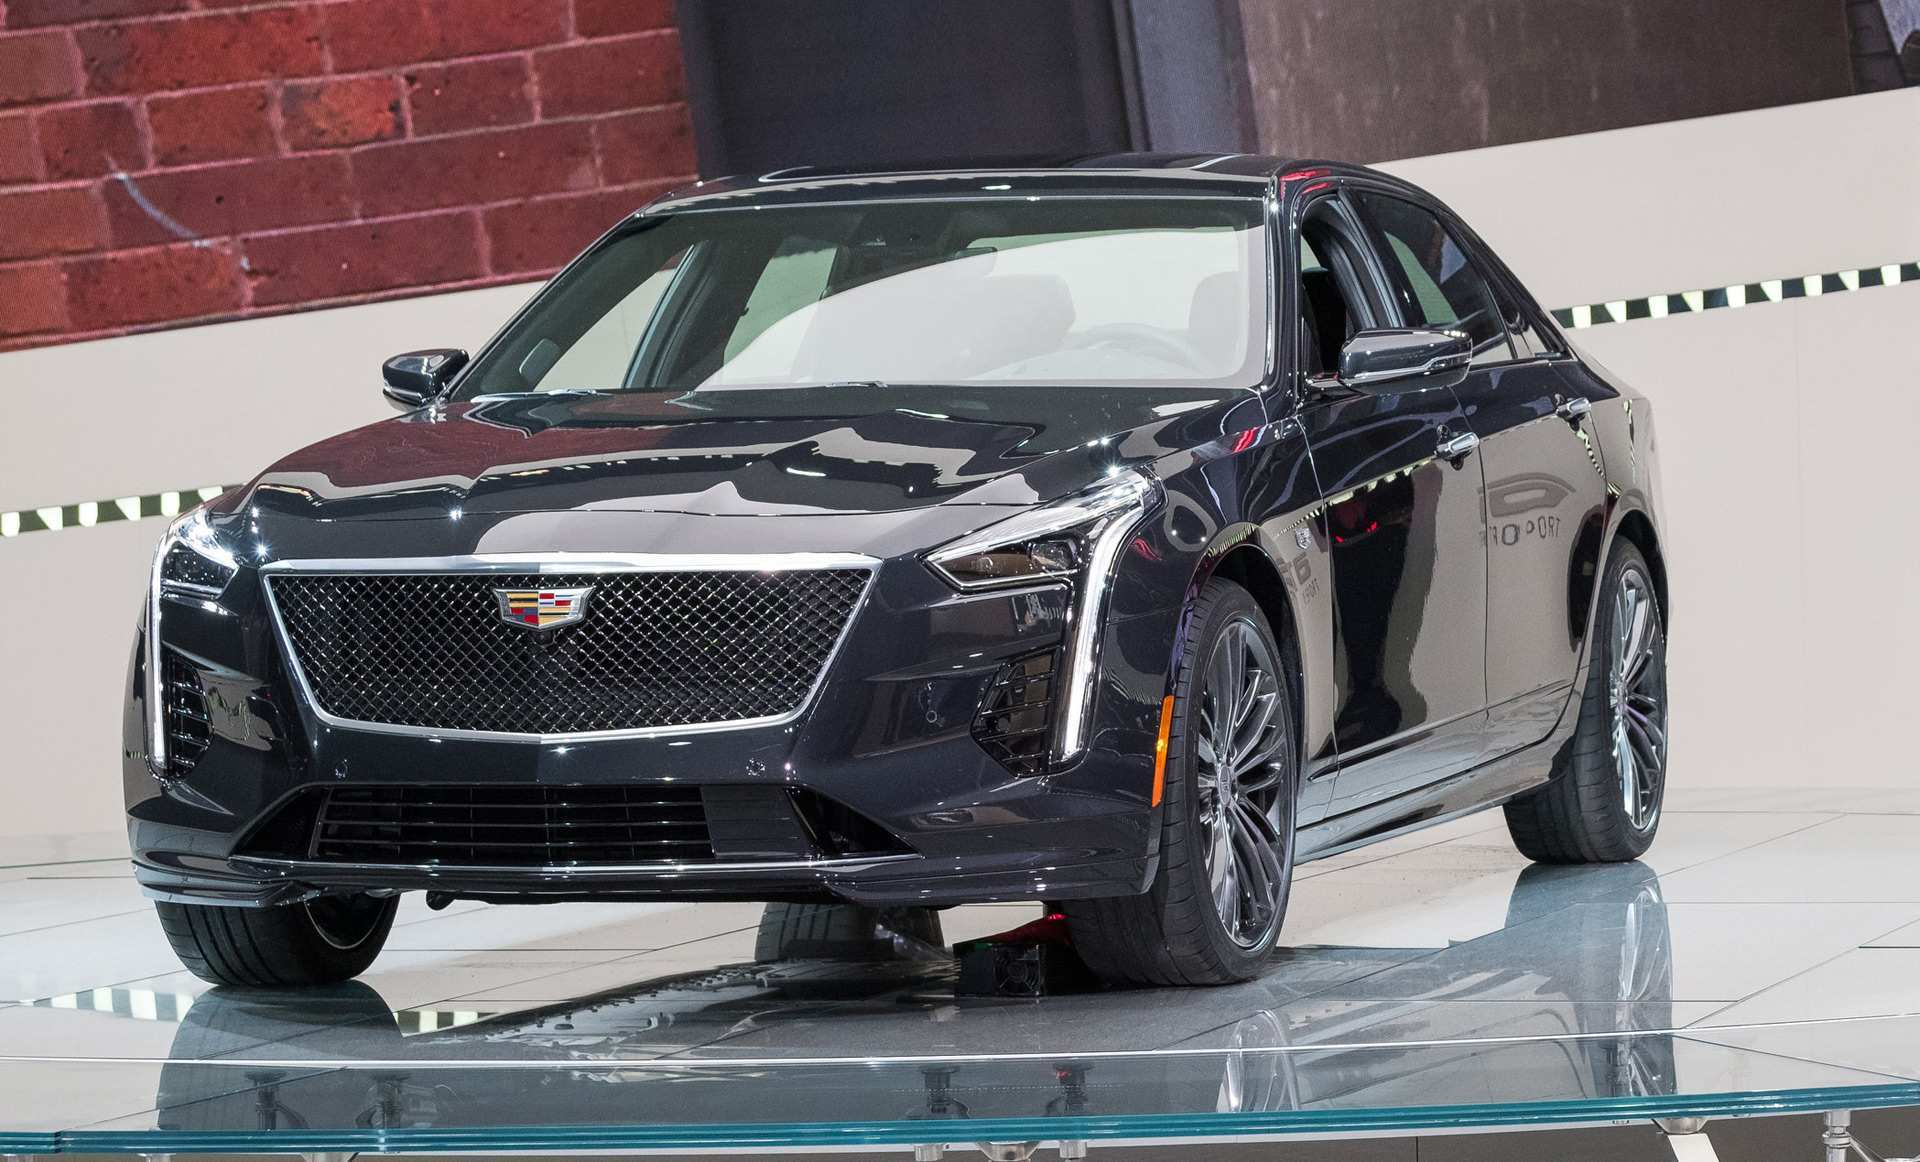 95 Concept of Cadillac Ct6 2020 Reviews by Cadillac Ct6 2020